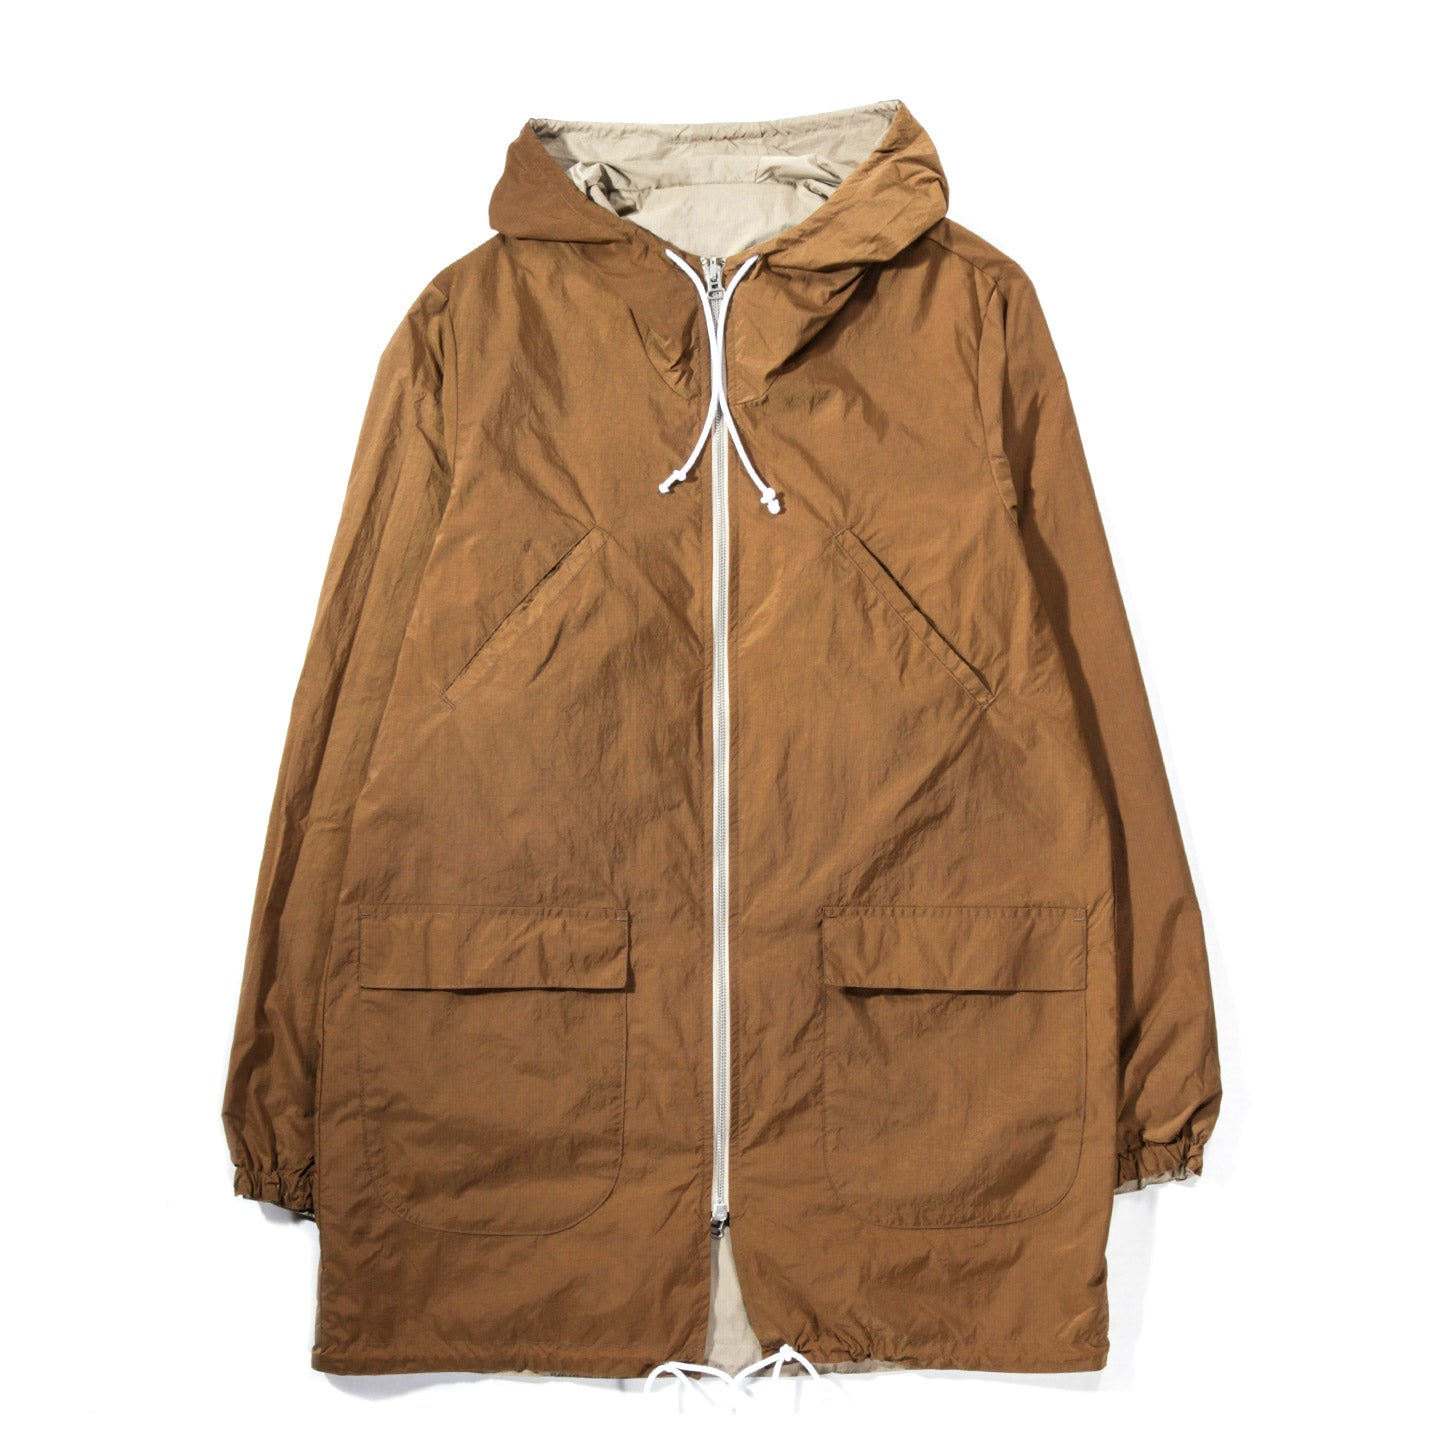 HOUSE OF ST. CLAIR REVERSIBLE PARKA TAN / CINNAMON RIPSTOP